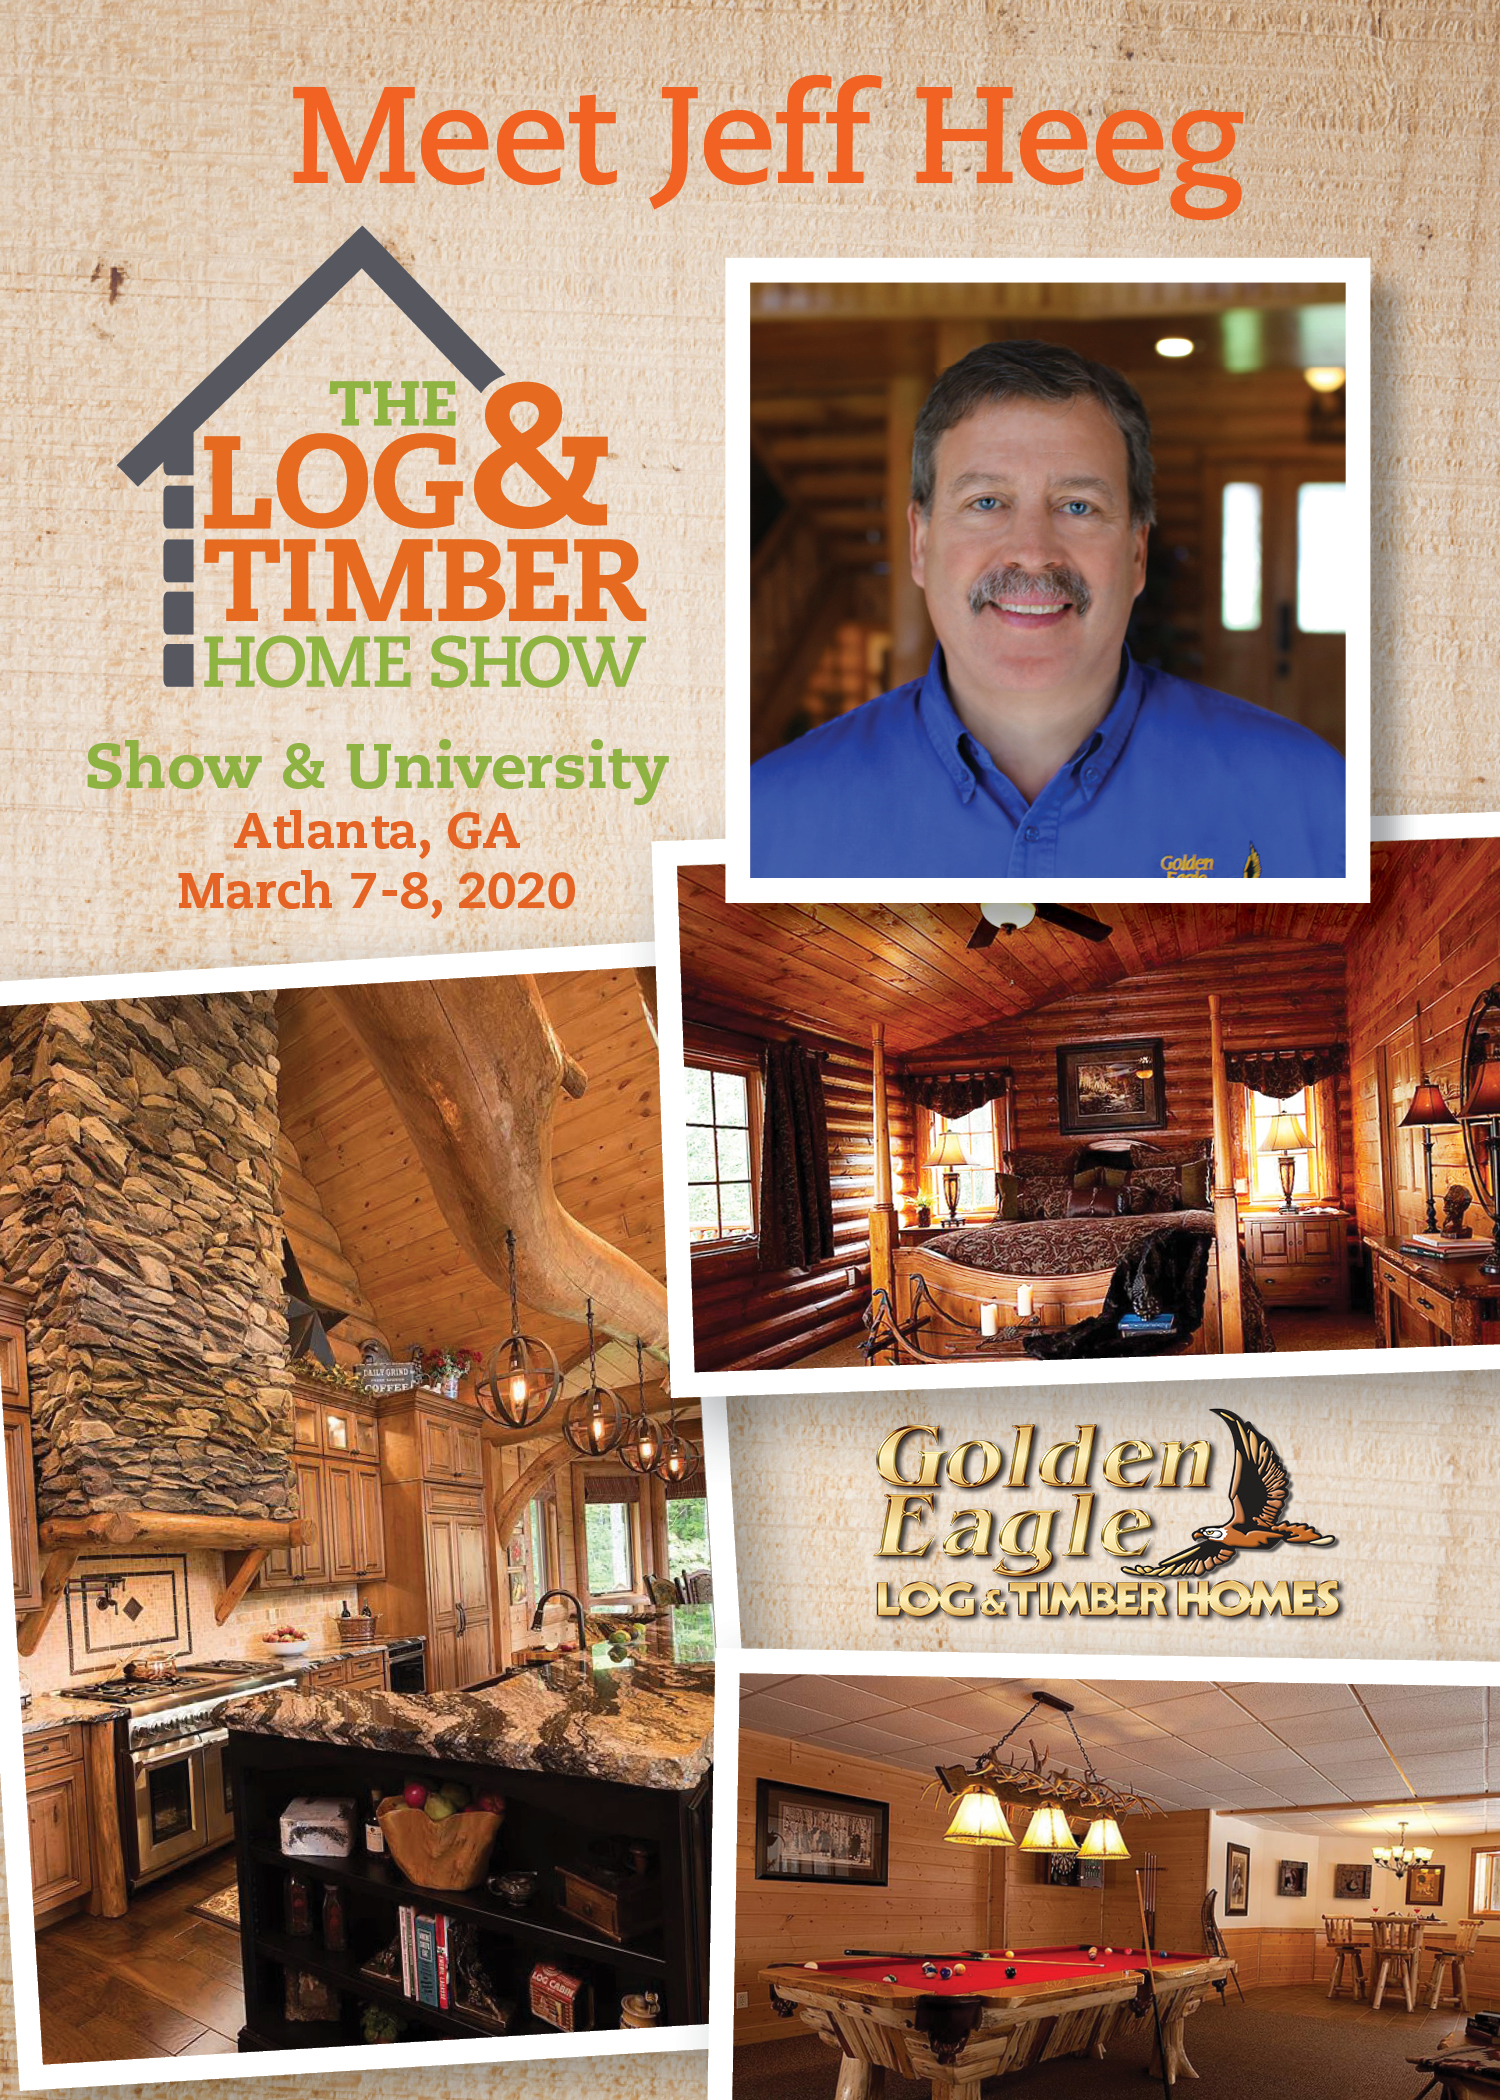 Golden Eagle Log & Timber Homes | Atlanta, GA | March 7-8, 2020 | Workshop Presentation